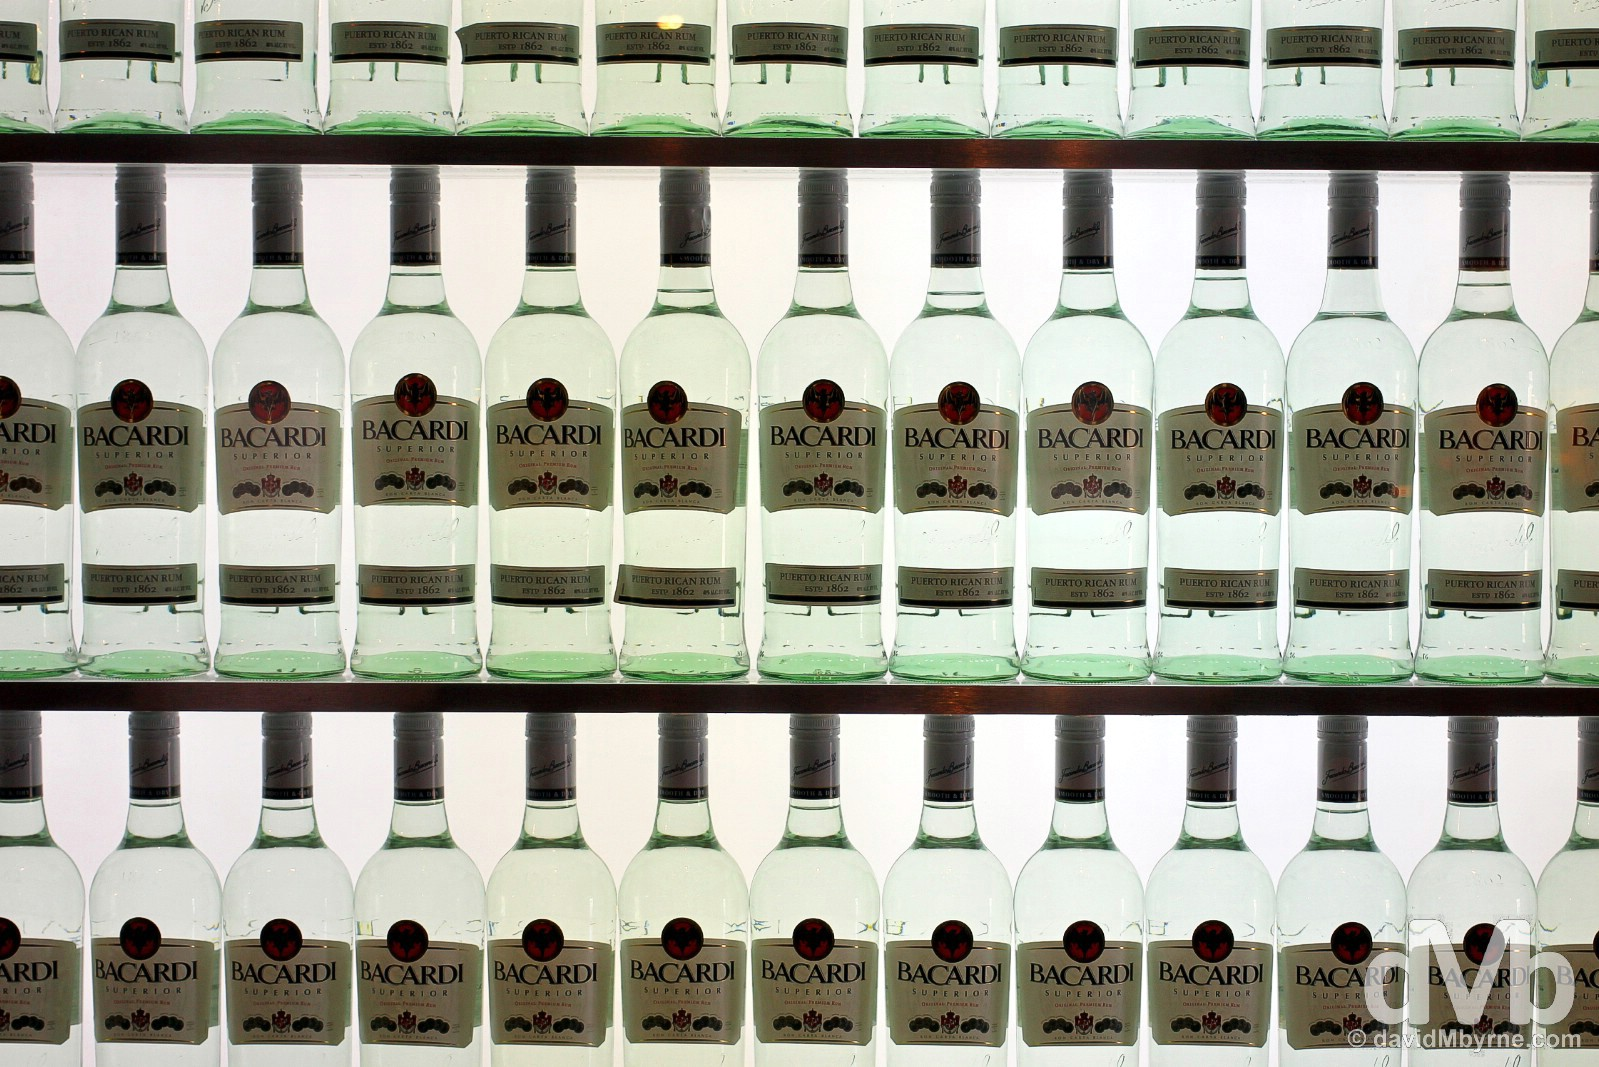 Casa Bacardi, a.k.a. the Cathedral of Rum. Cataño, Puerto Rico, Great Antilles. June 2, 2015.